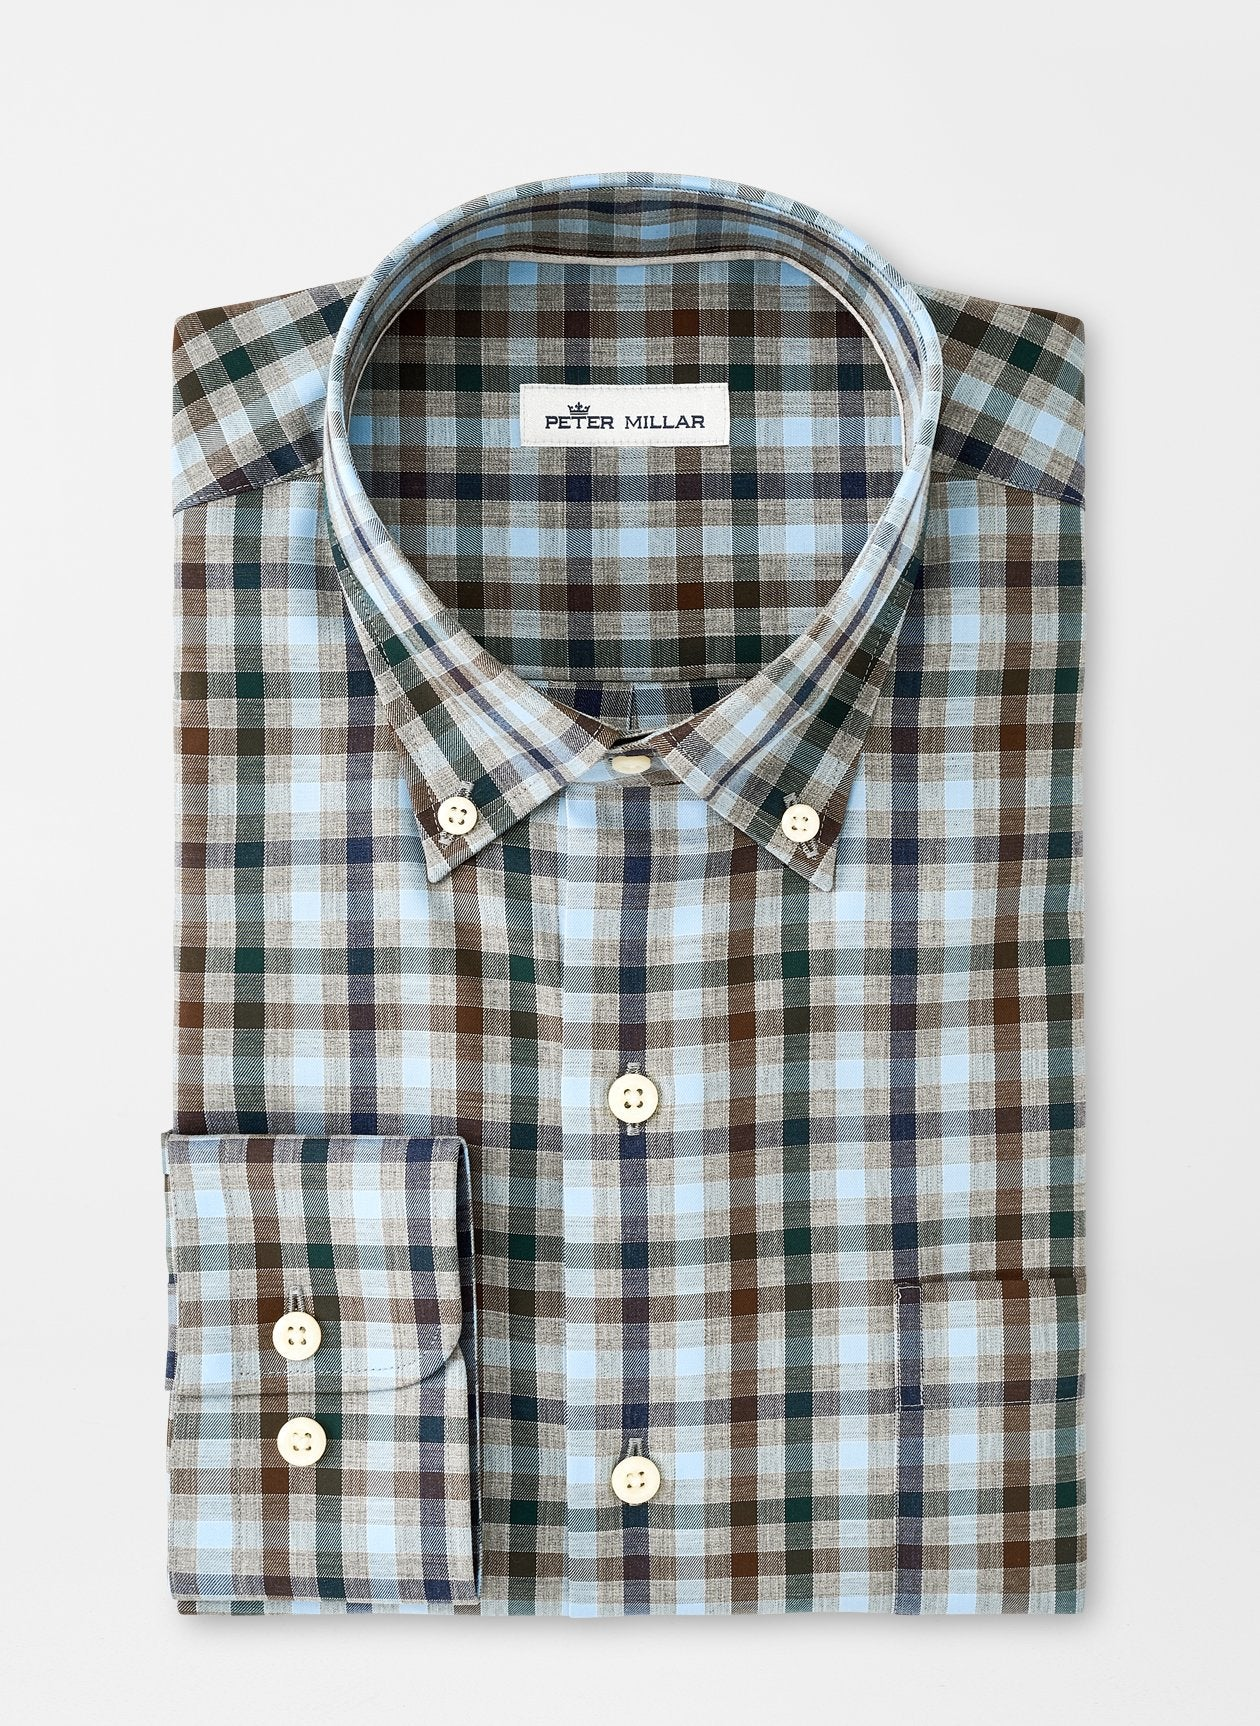 PETER MILLAR Men's Sport Shirt Peter Millar Crown Ease Phillip Sport Shirt || David's Clothing